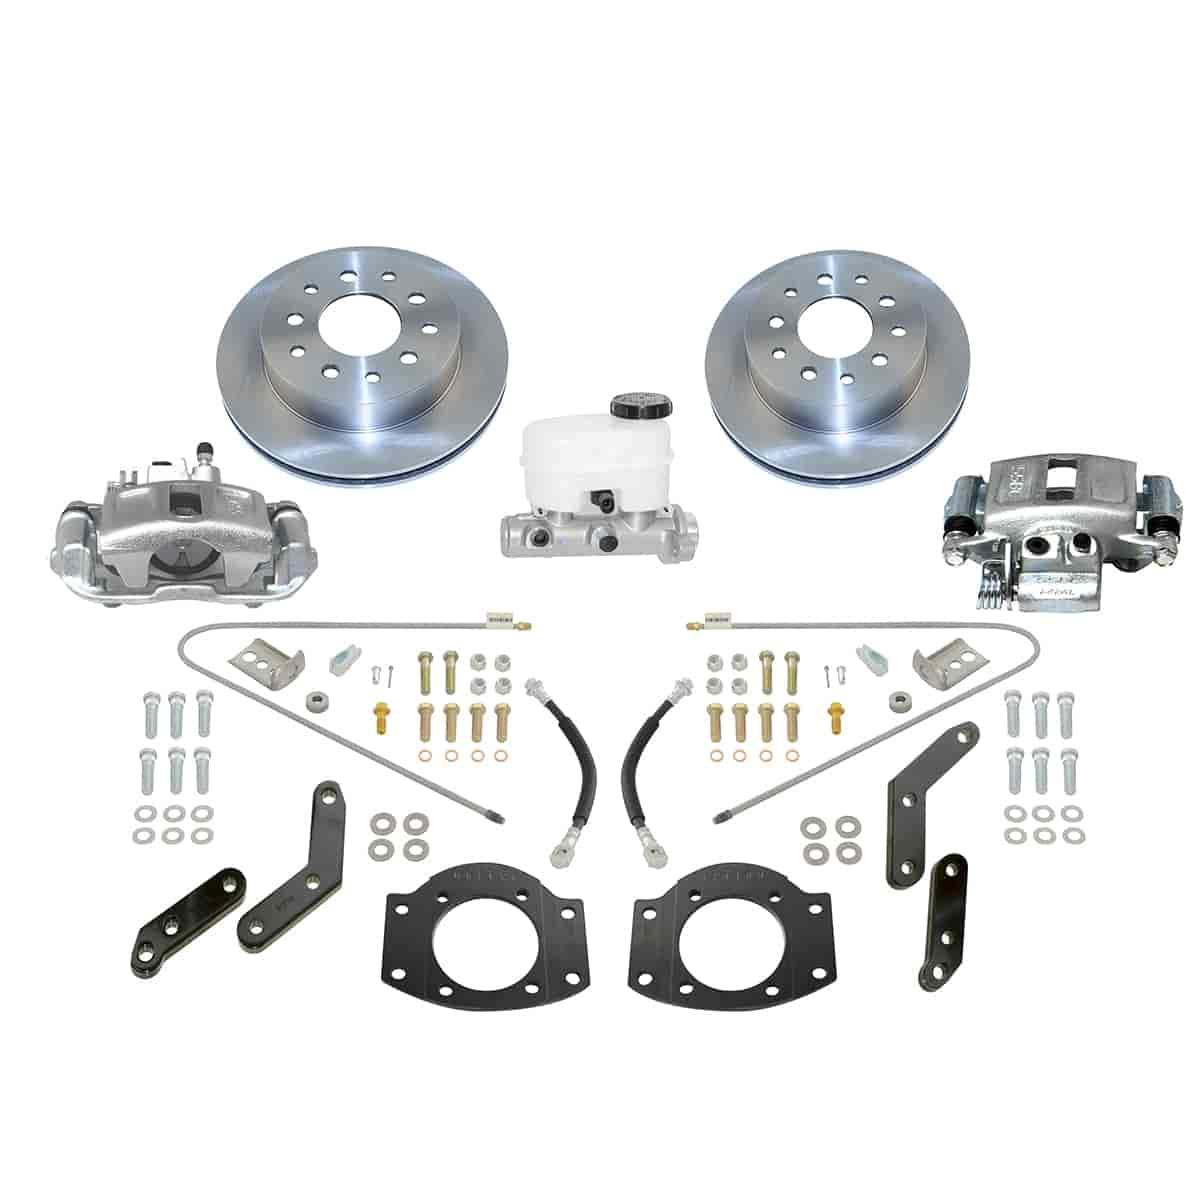 SSBC A126-2 - Stainless Steel Brakes Single Piston Rear Drum to Disc Brake Conversion Kits